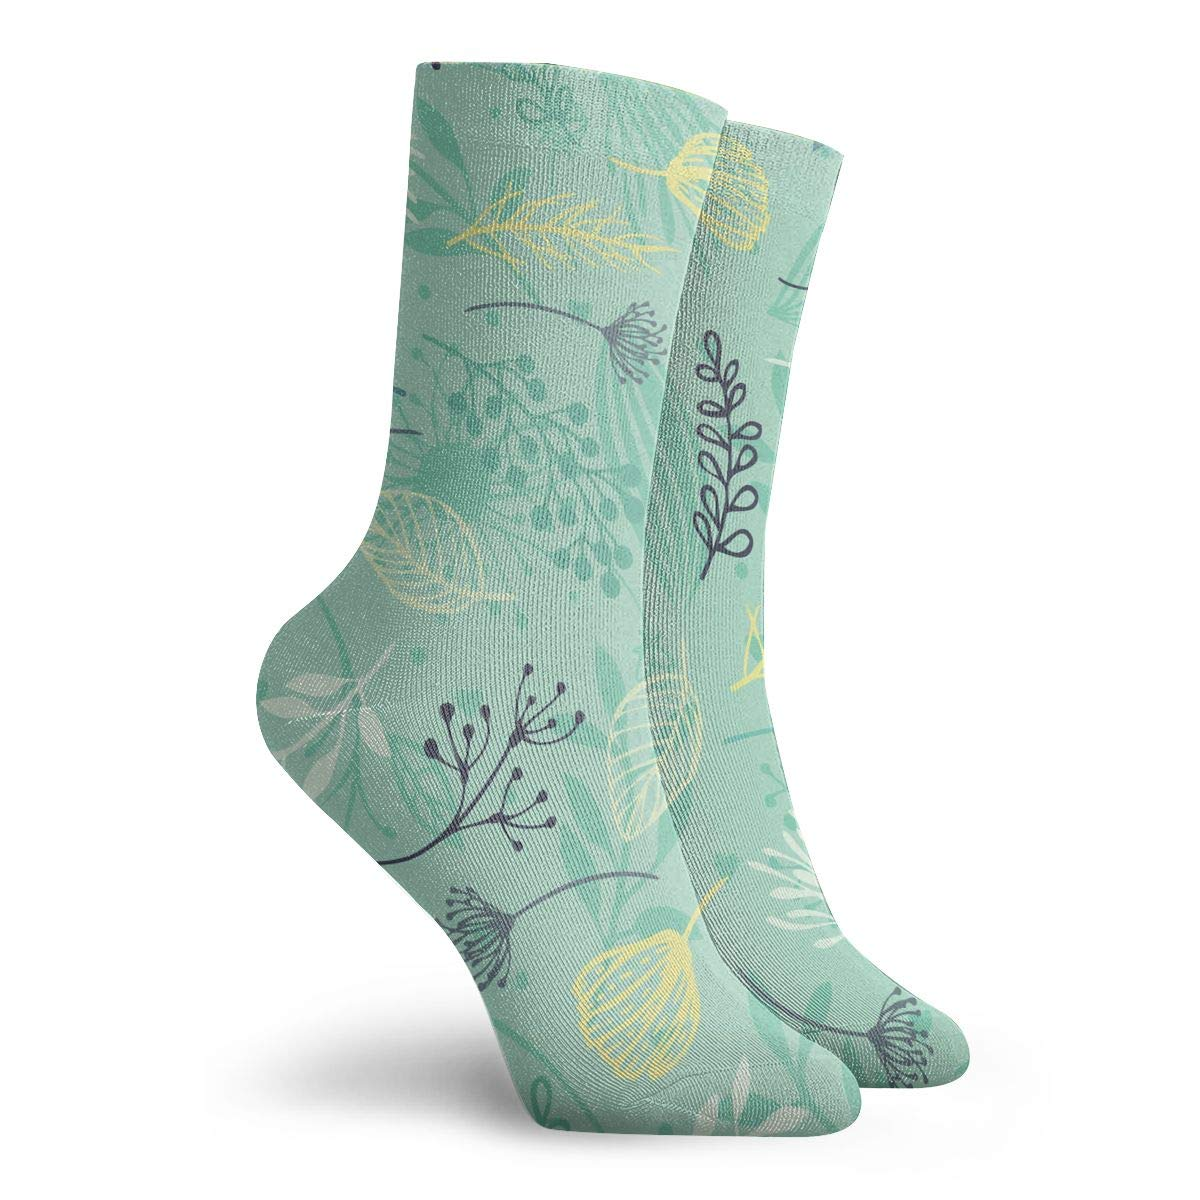 Forest Unisex Funny Casual Crew Socks Athletic Socks For Boys Girls Kids Teenagers